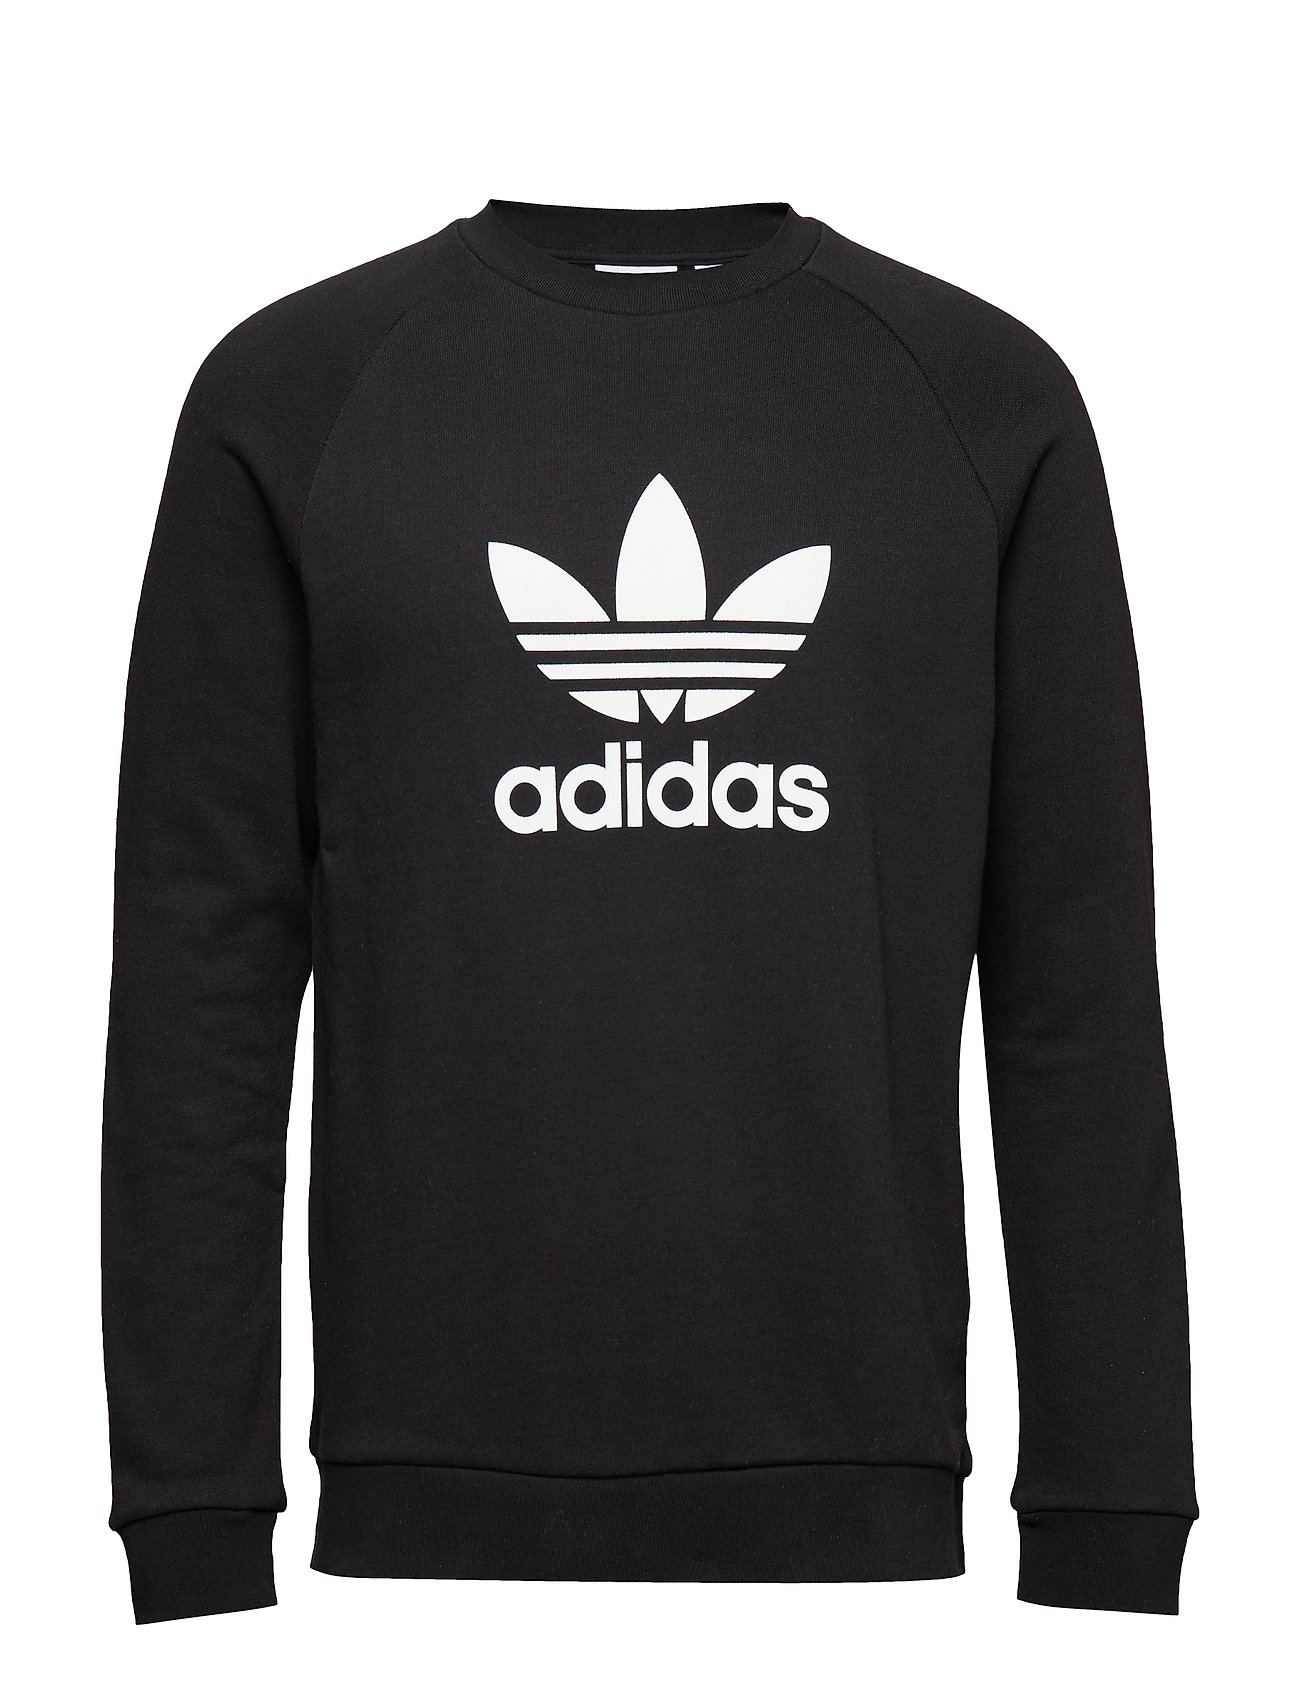 adidas Originals TREFOIL CREW - BLACK